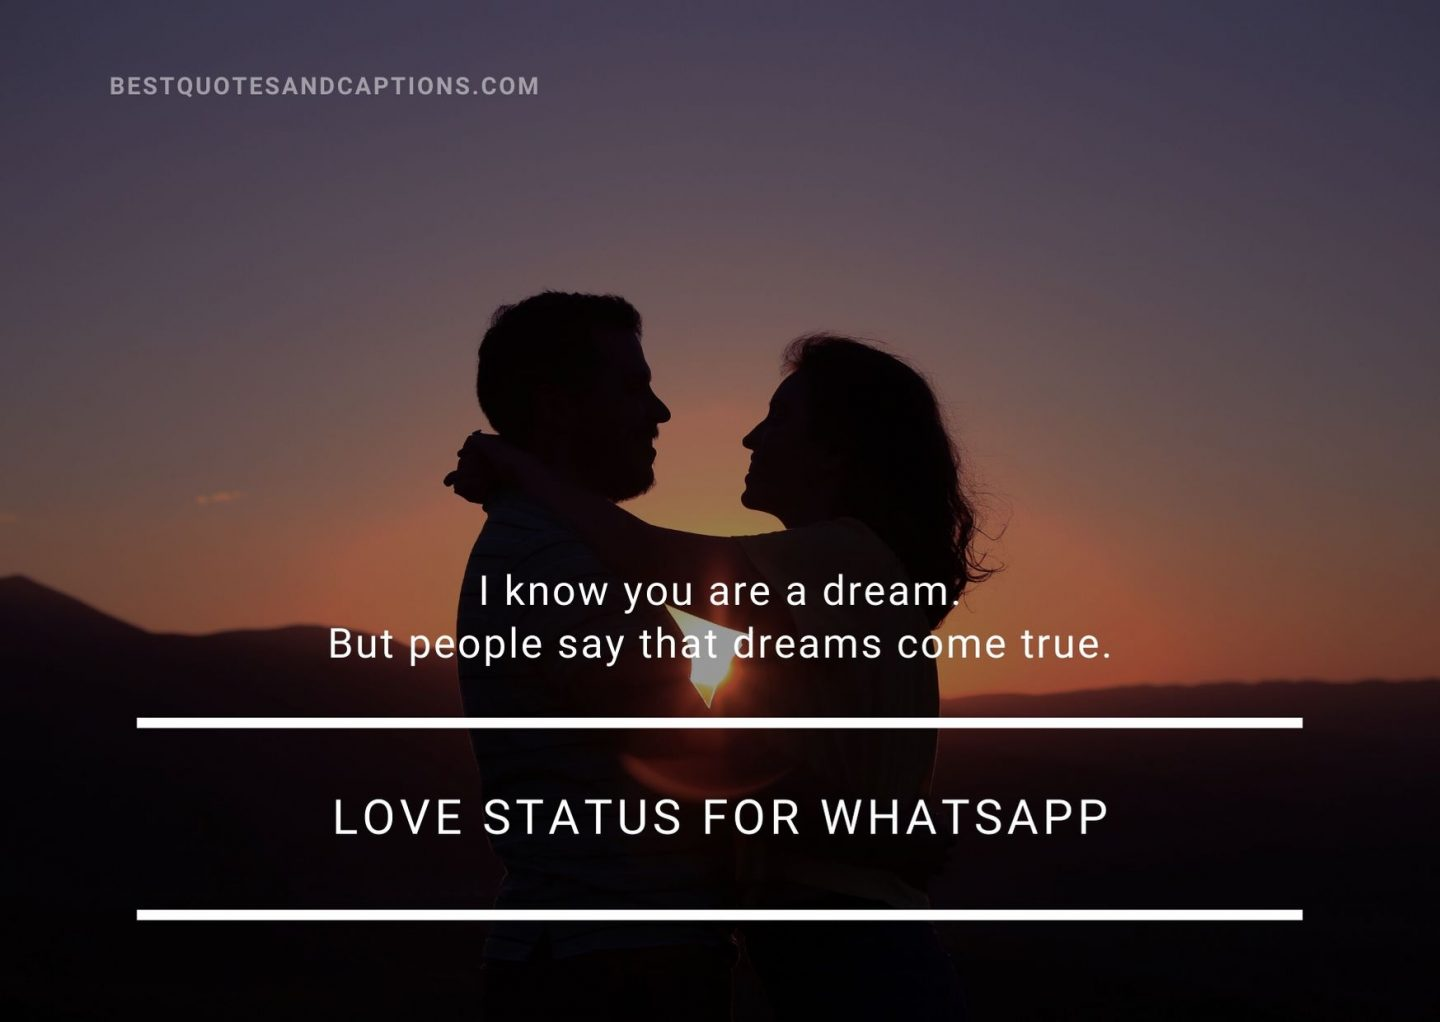 Love Status For Whatsapp 350 Of The Best Love Status In English